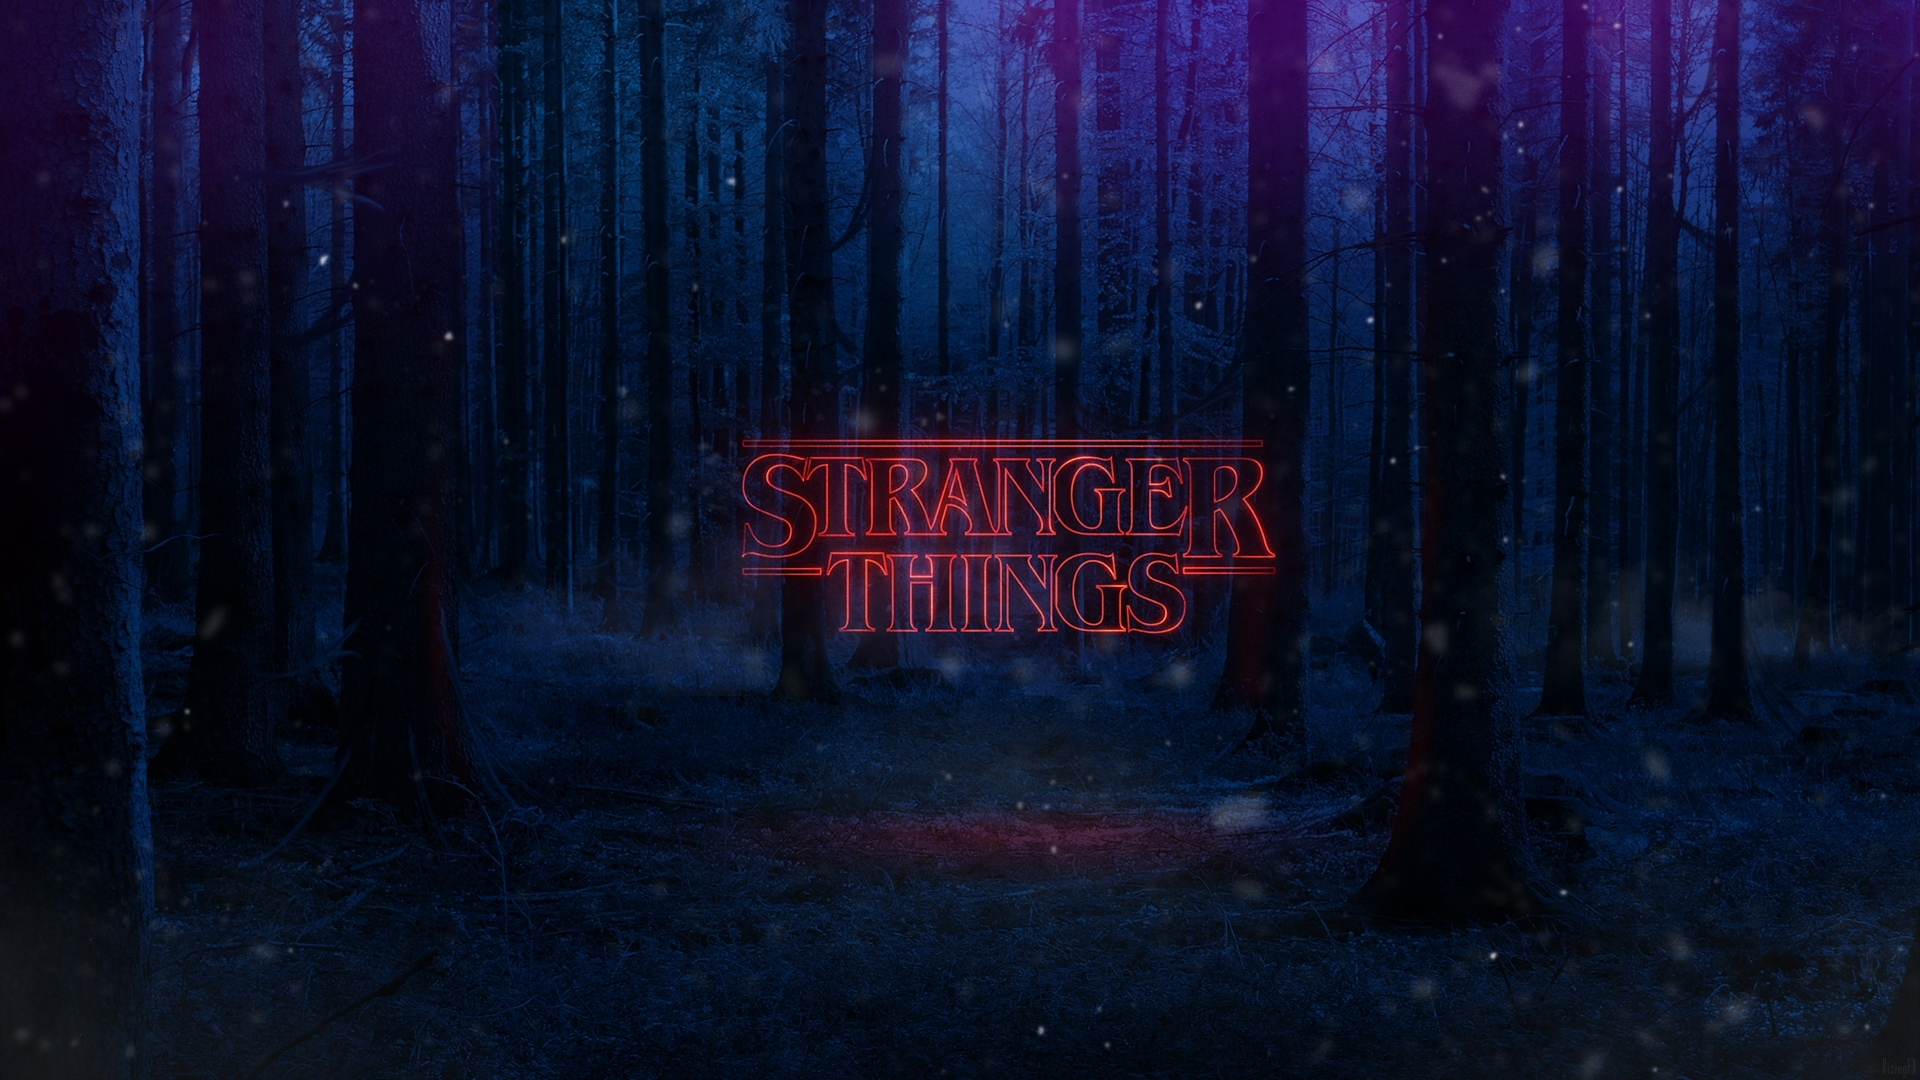 download stranger things text poster 1280x800 resolution, full hd